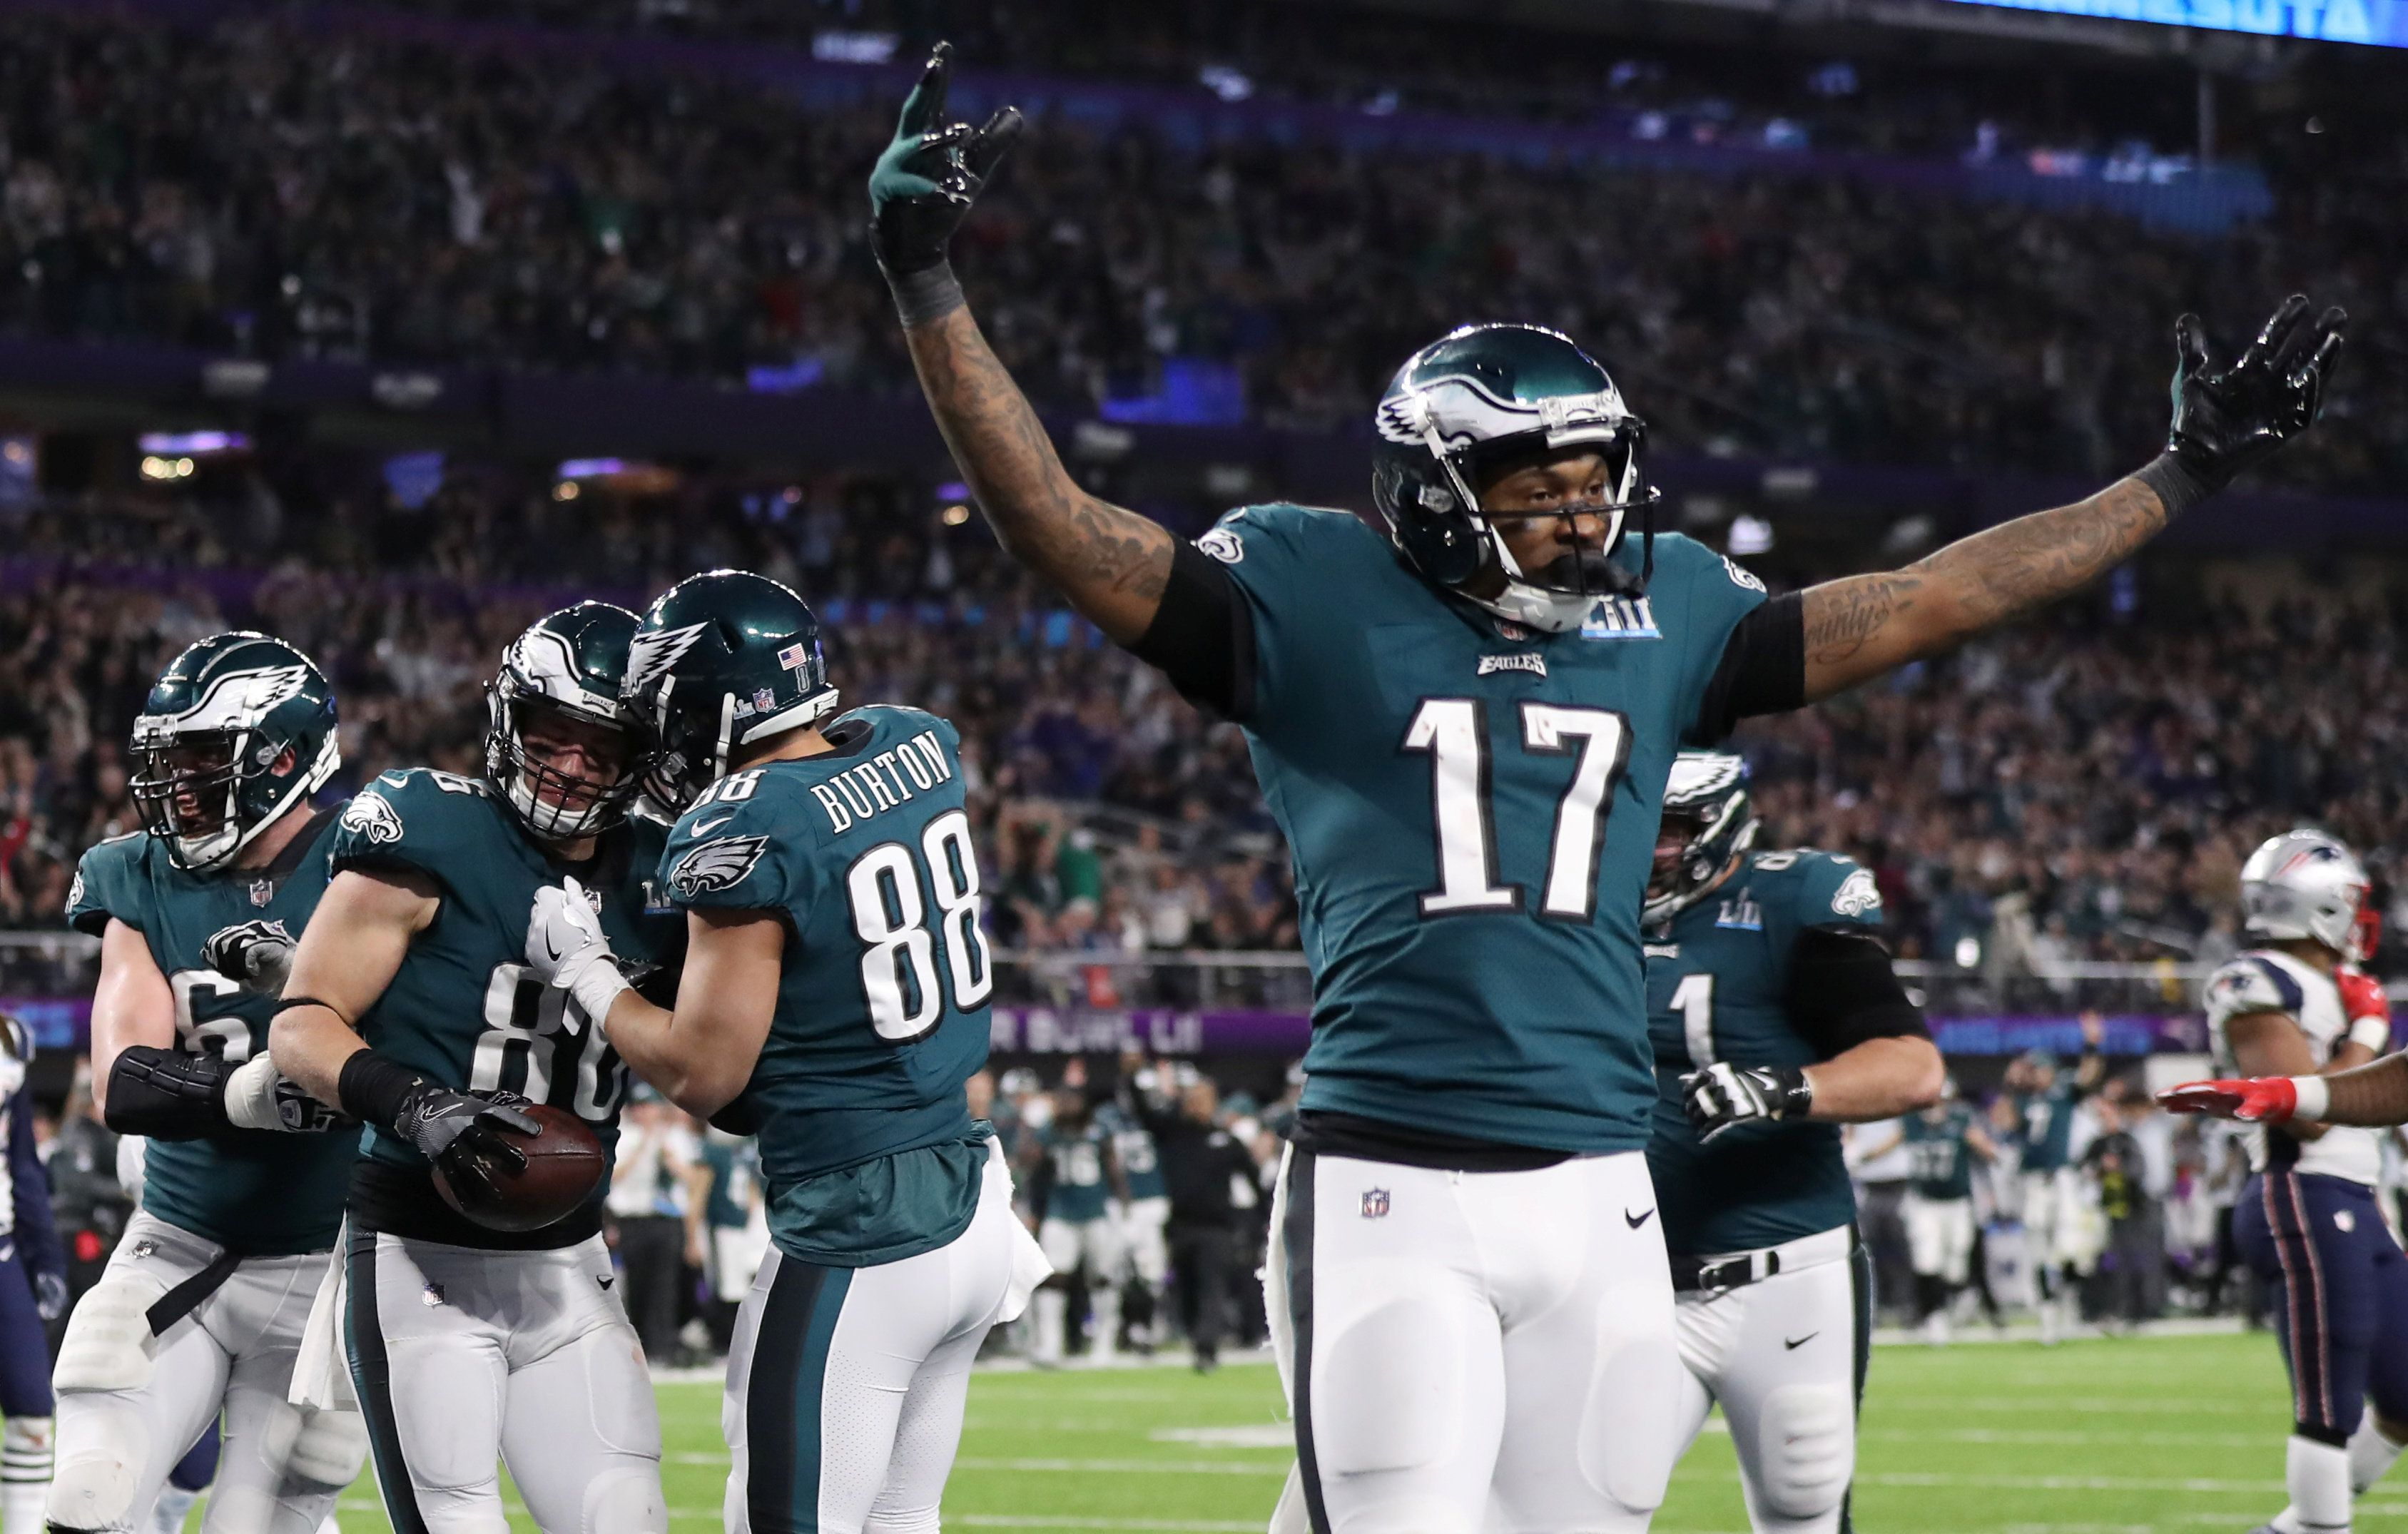 NFL Football - Philadelphia Eagles v New England Patriots - Super Bowl LII - U.S. Bank Stadium, Minneapolis, Minnesota, U.S. - February 4, 2018. Philadelphia Eagles' Zach Ertz celebrates scoring a touchdown with team mates. REUTERS/Chris Wattie     TPX IMAGES OF THE DAY